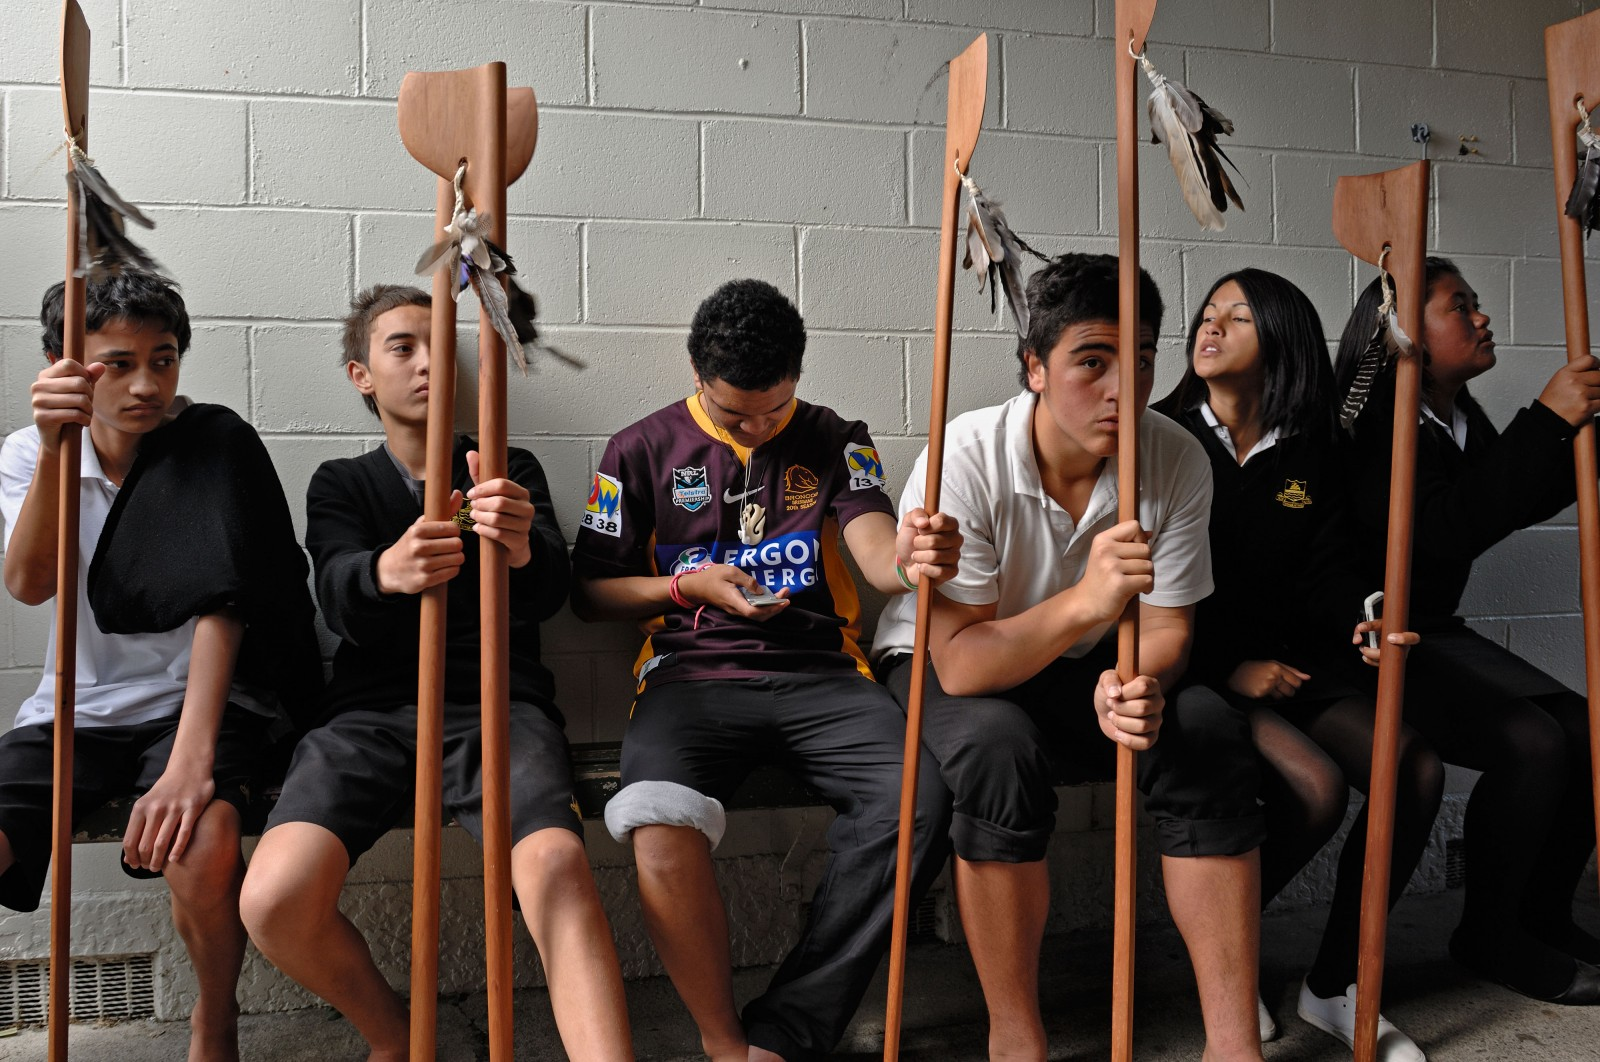 Students from Whakatane High School await their taiaha practice, part of a cohort of Maori in a population strongly biased toward youth. More than half of Maori will be under 30 in 2026. The relatively high working age population means they stand to reap an economic dividend if they can overcome the challenges created by long-standing structural inequality.